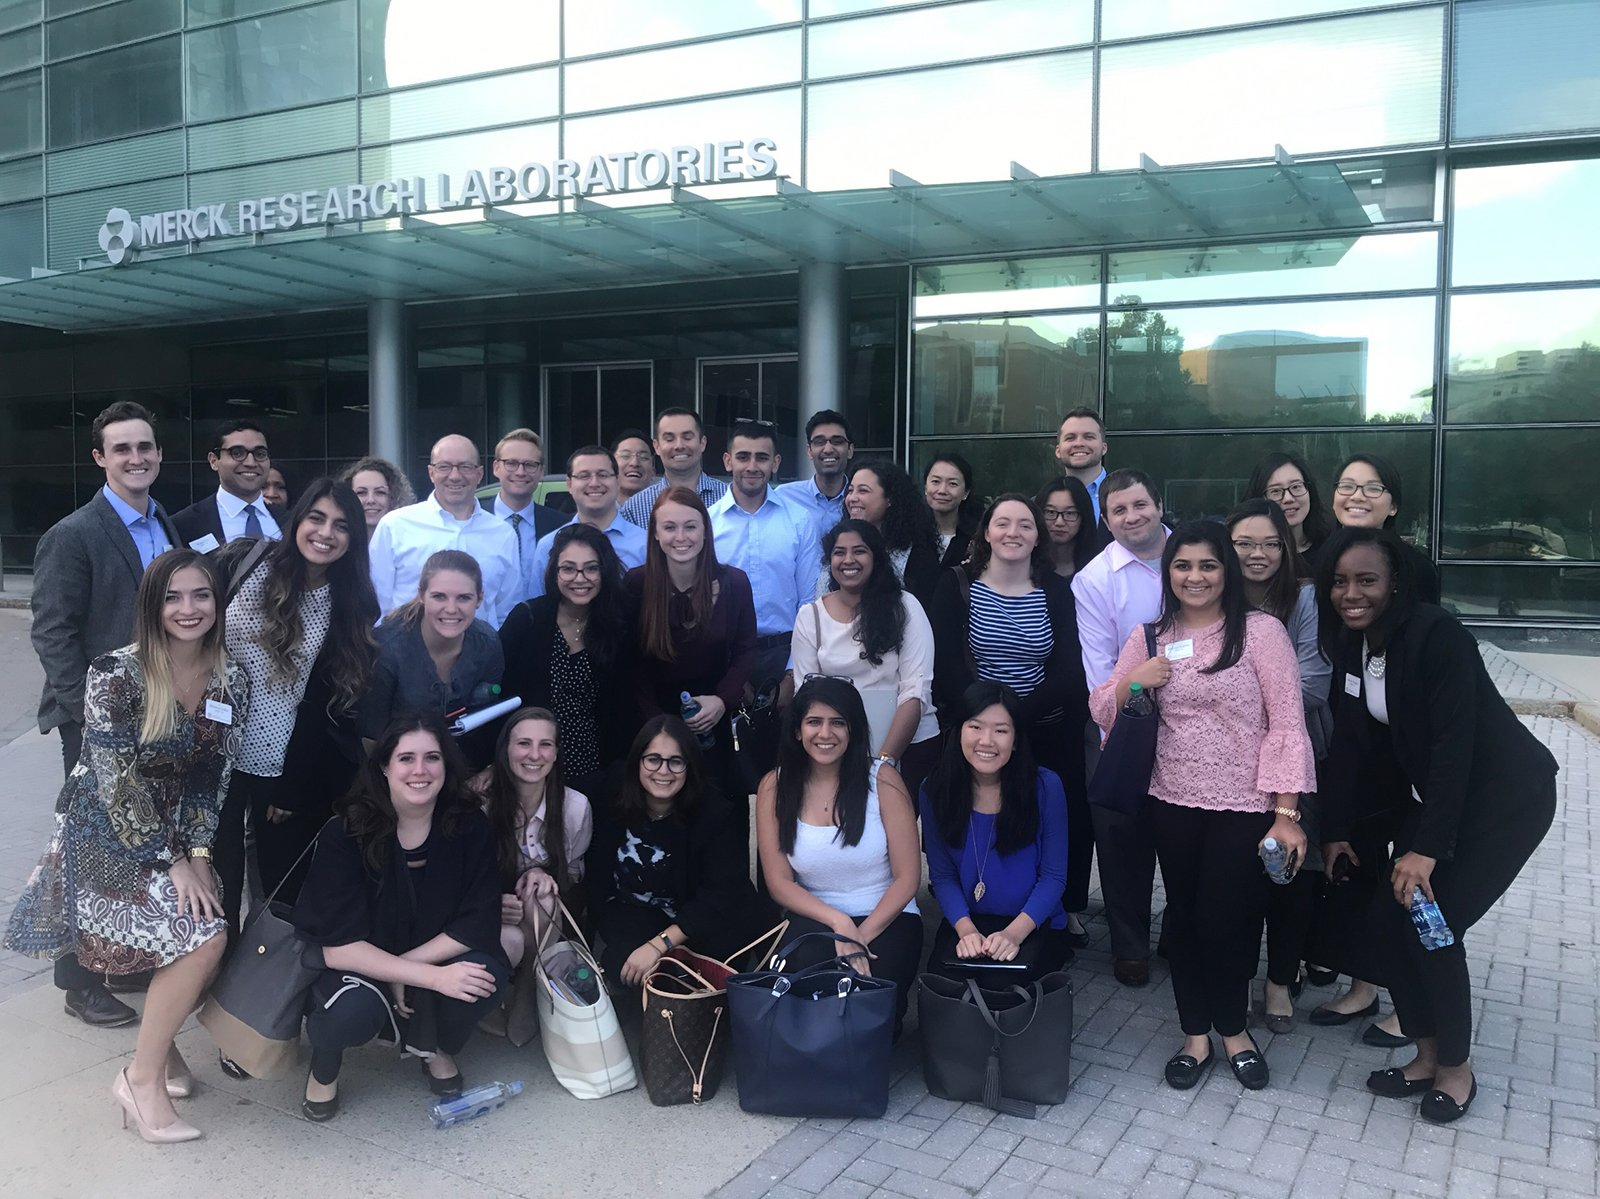 Sloan, students visiting the Merck research laboratories